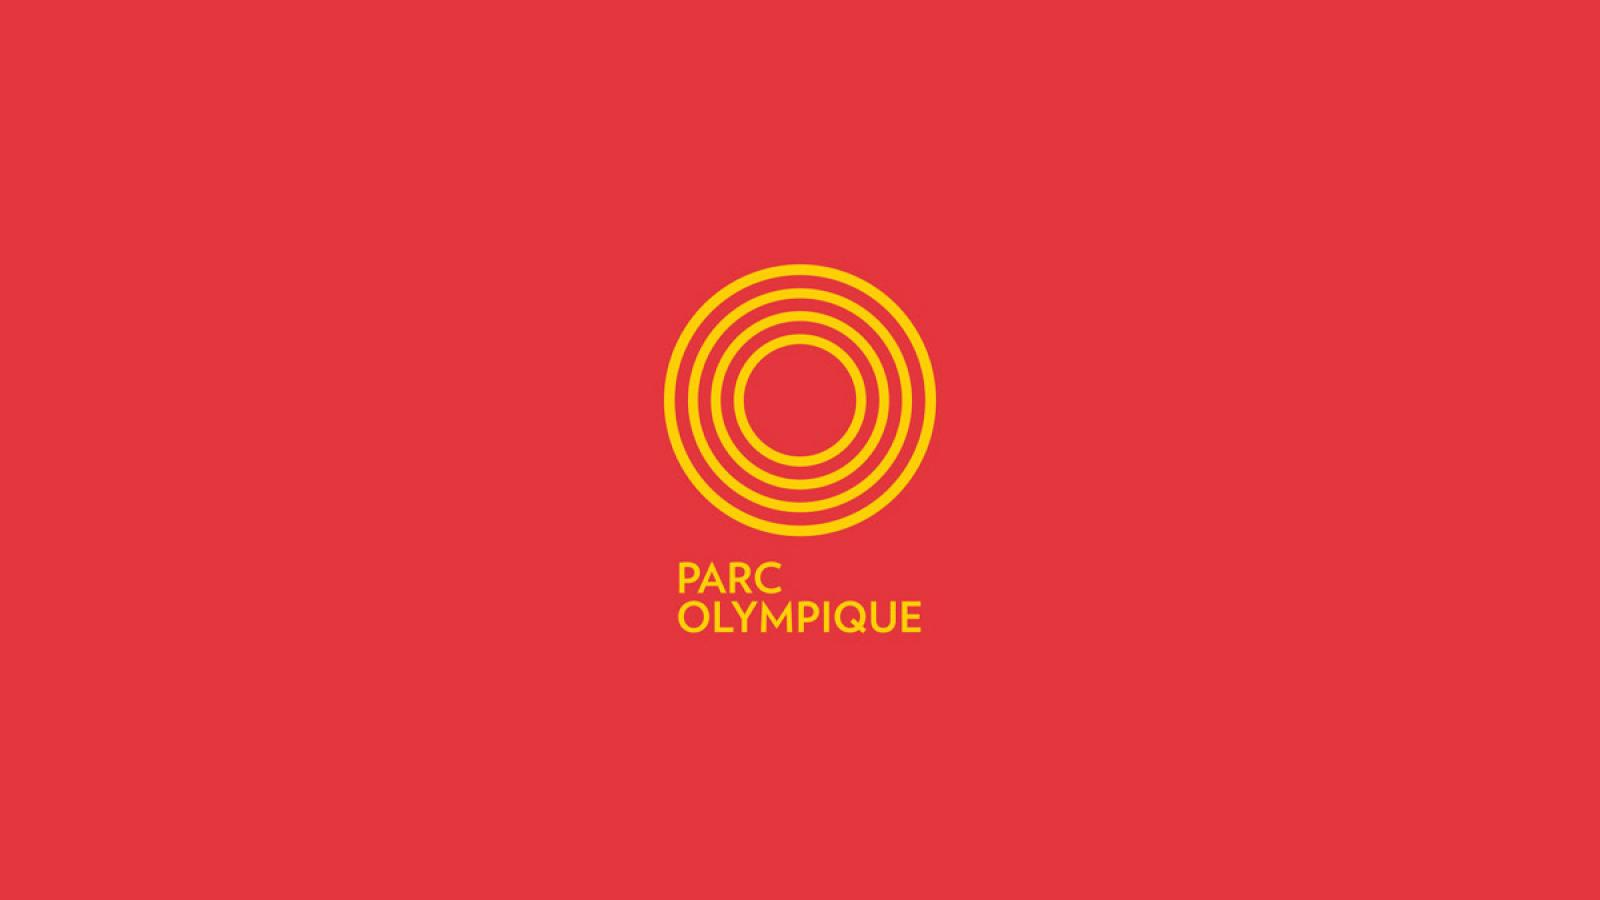 Parc Olympique Visual Identity by lg2boutique